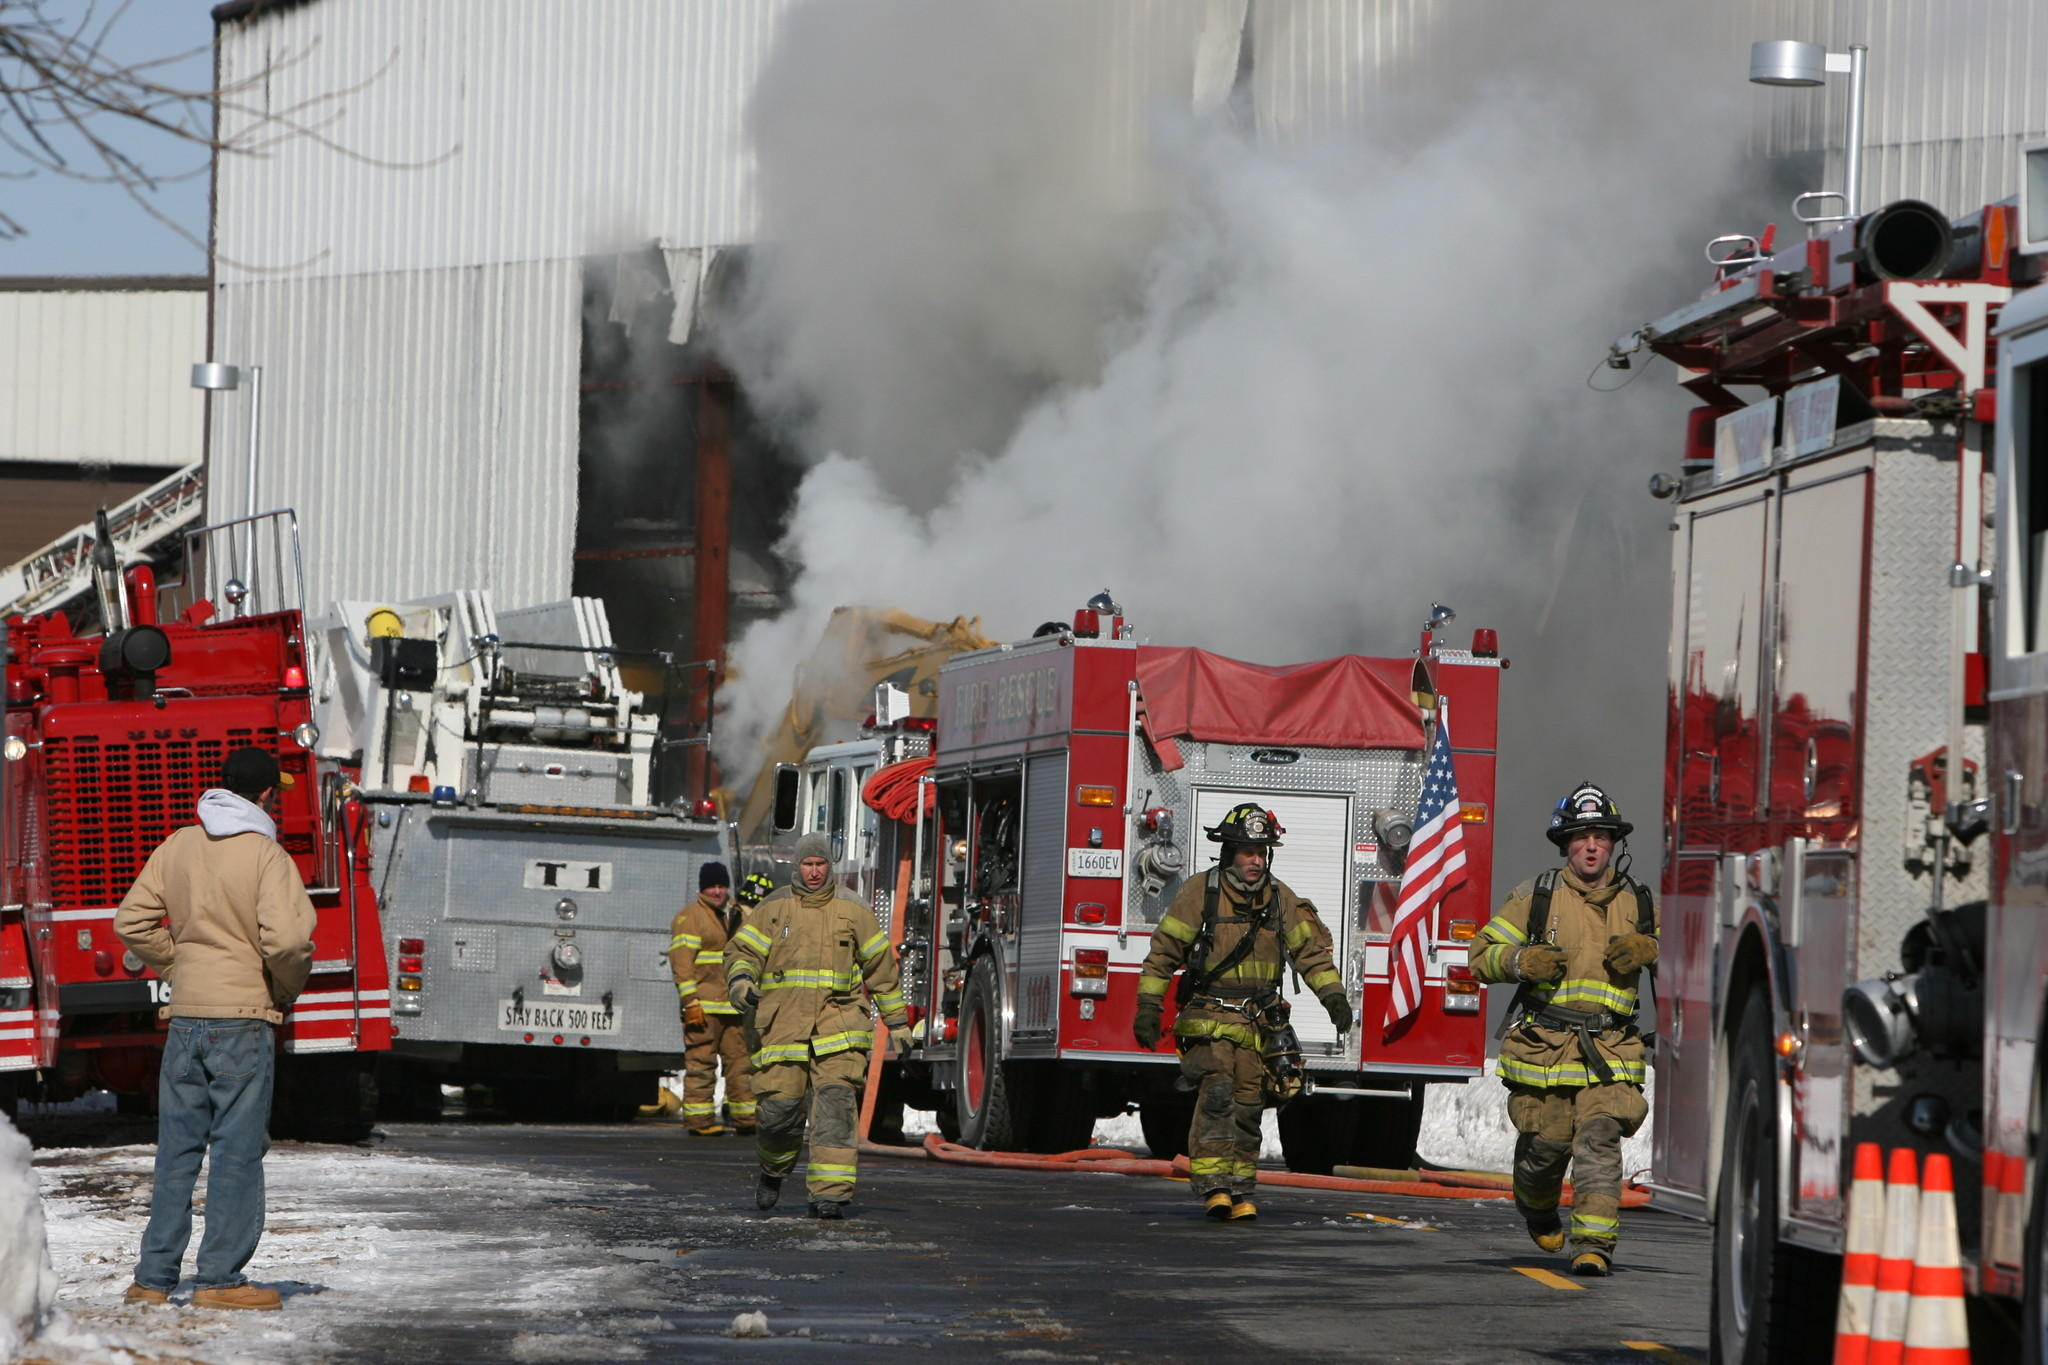 Firefighters run for more hoses as they work a four-alarm fire with foam (smoke appearance) at a boat storage building at Skipper Bud's in Winthrop Harbor, Ill.